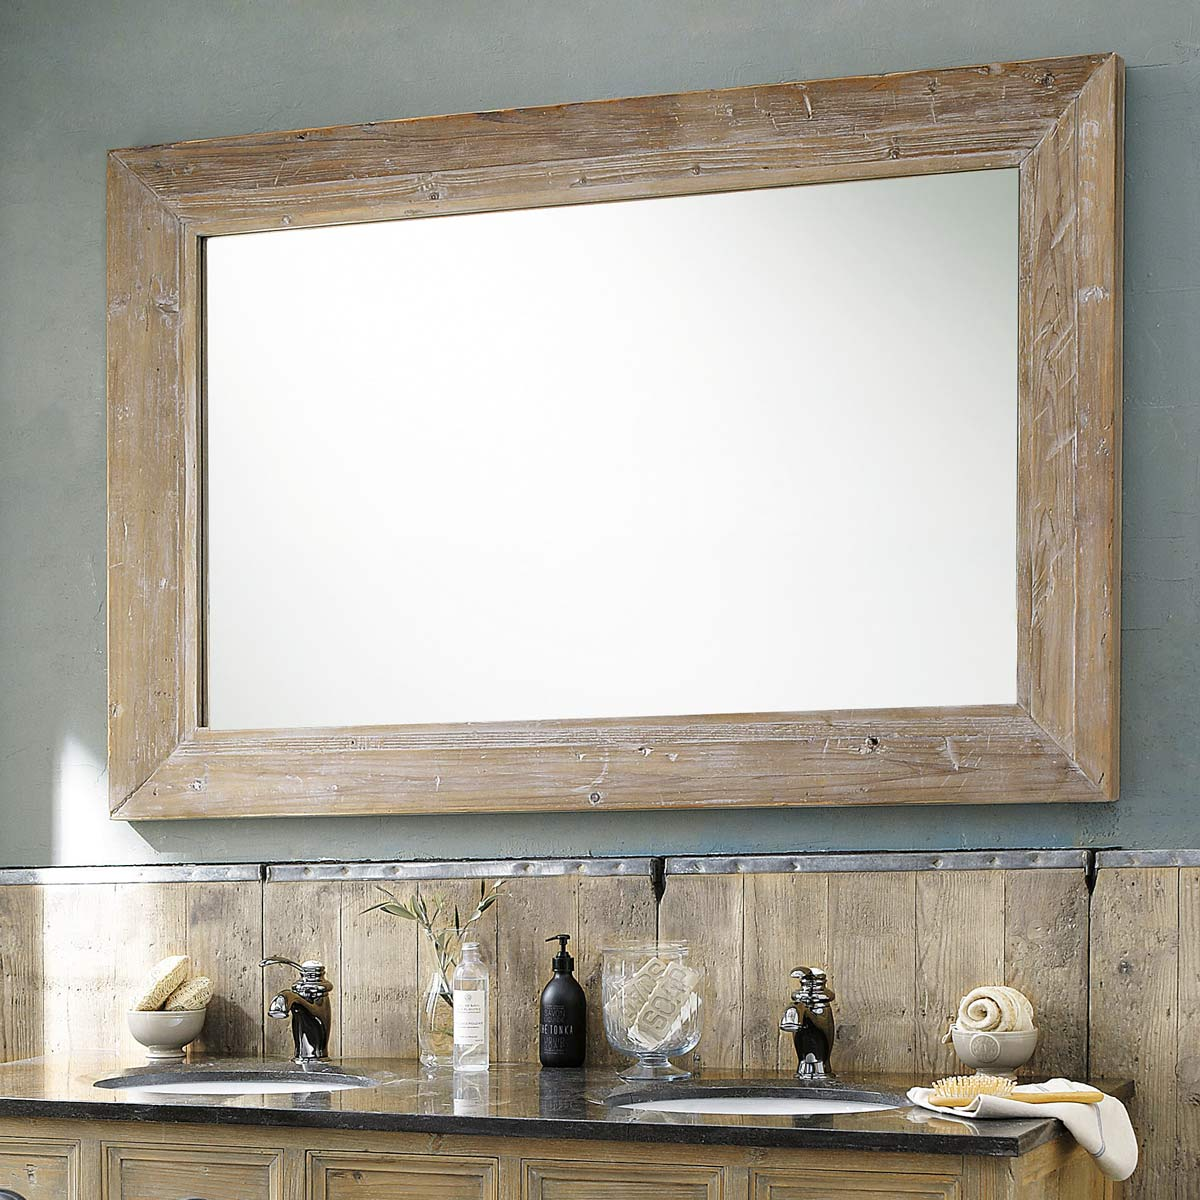 Grand miroir en bois naturel miroir d coration for Grand miroir rectangulaire